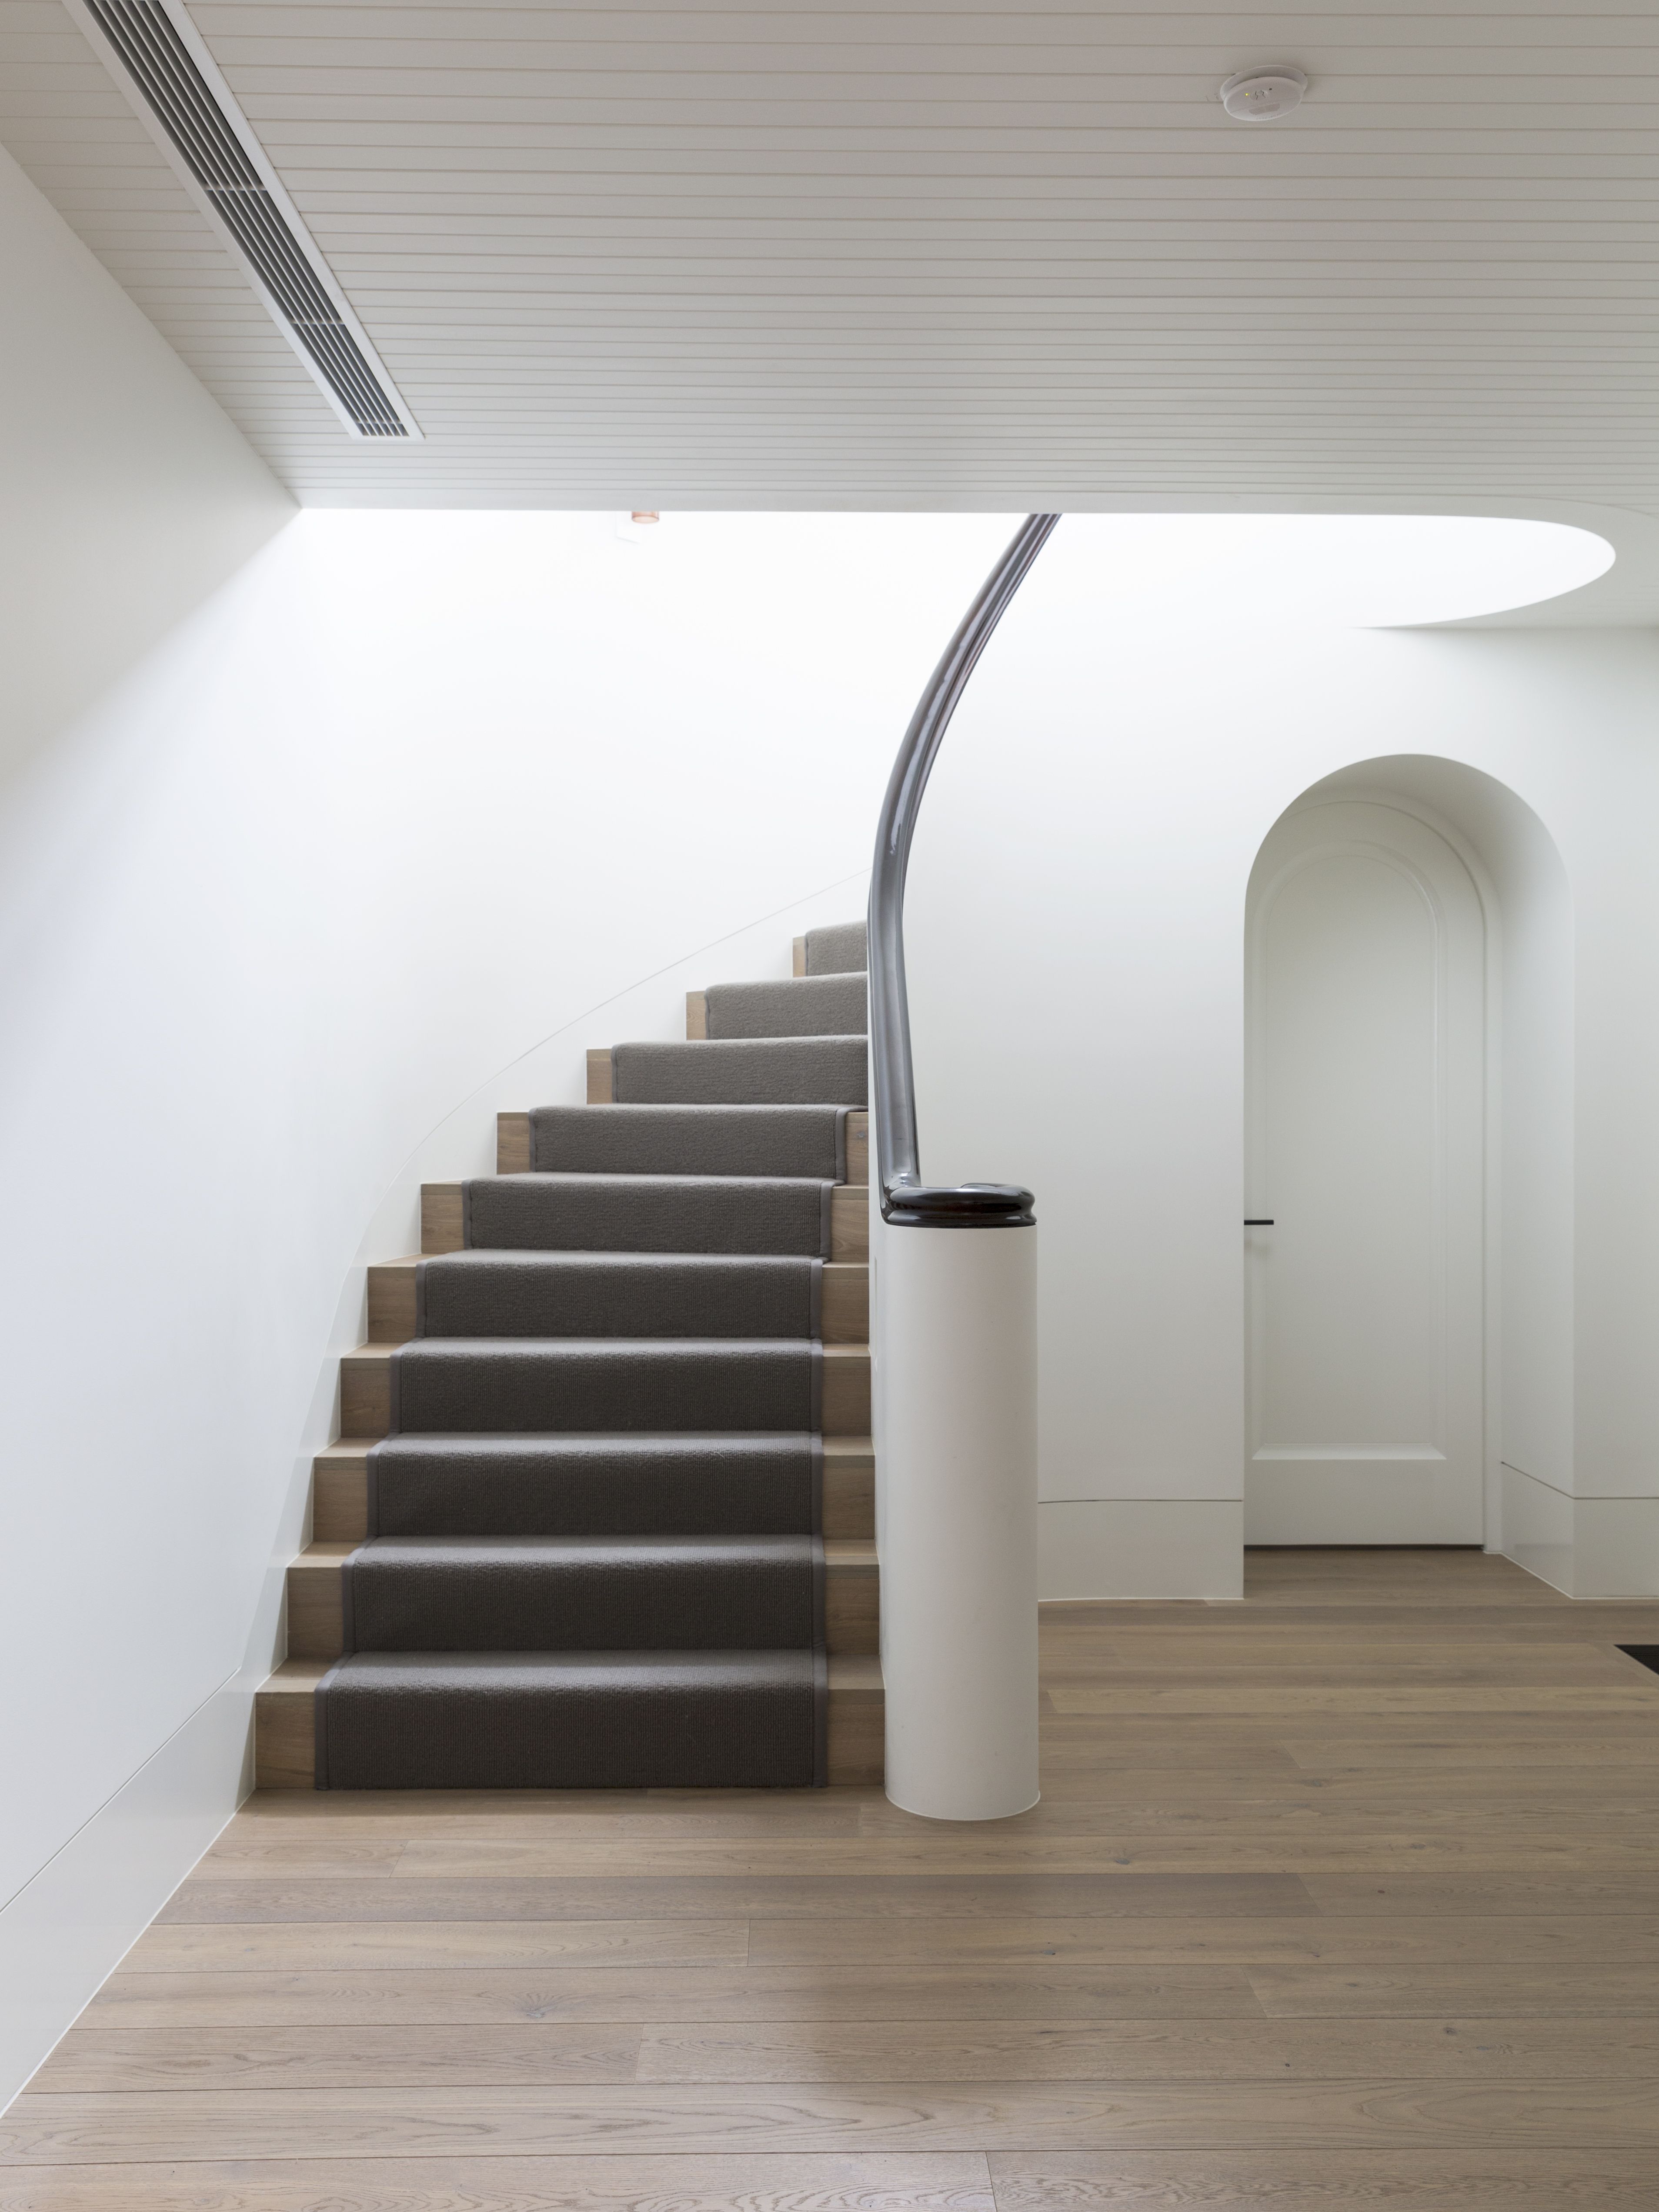 Feature | Stairs | Staircase | Plaster Walls | Curved | Geometric ...